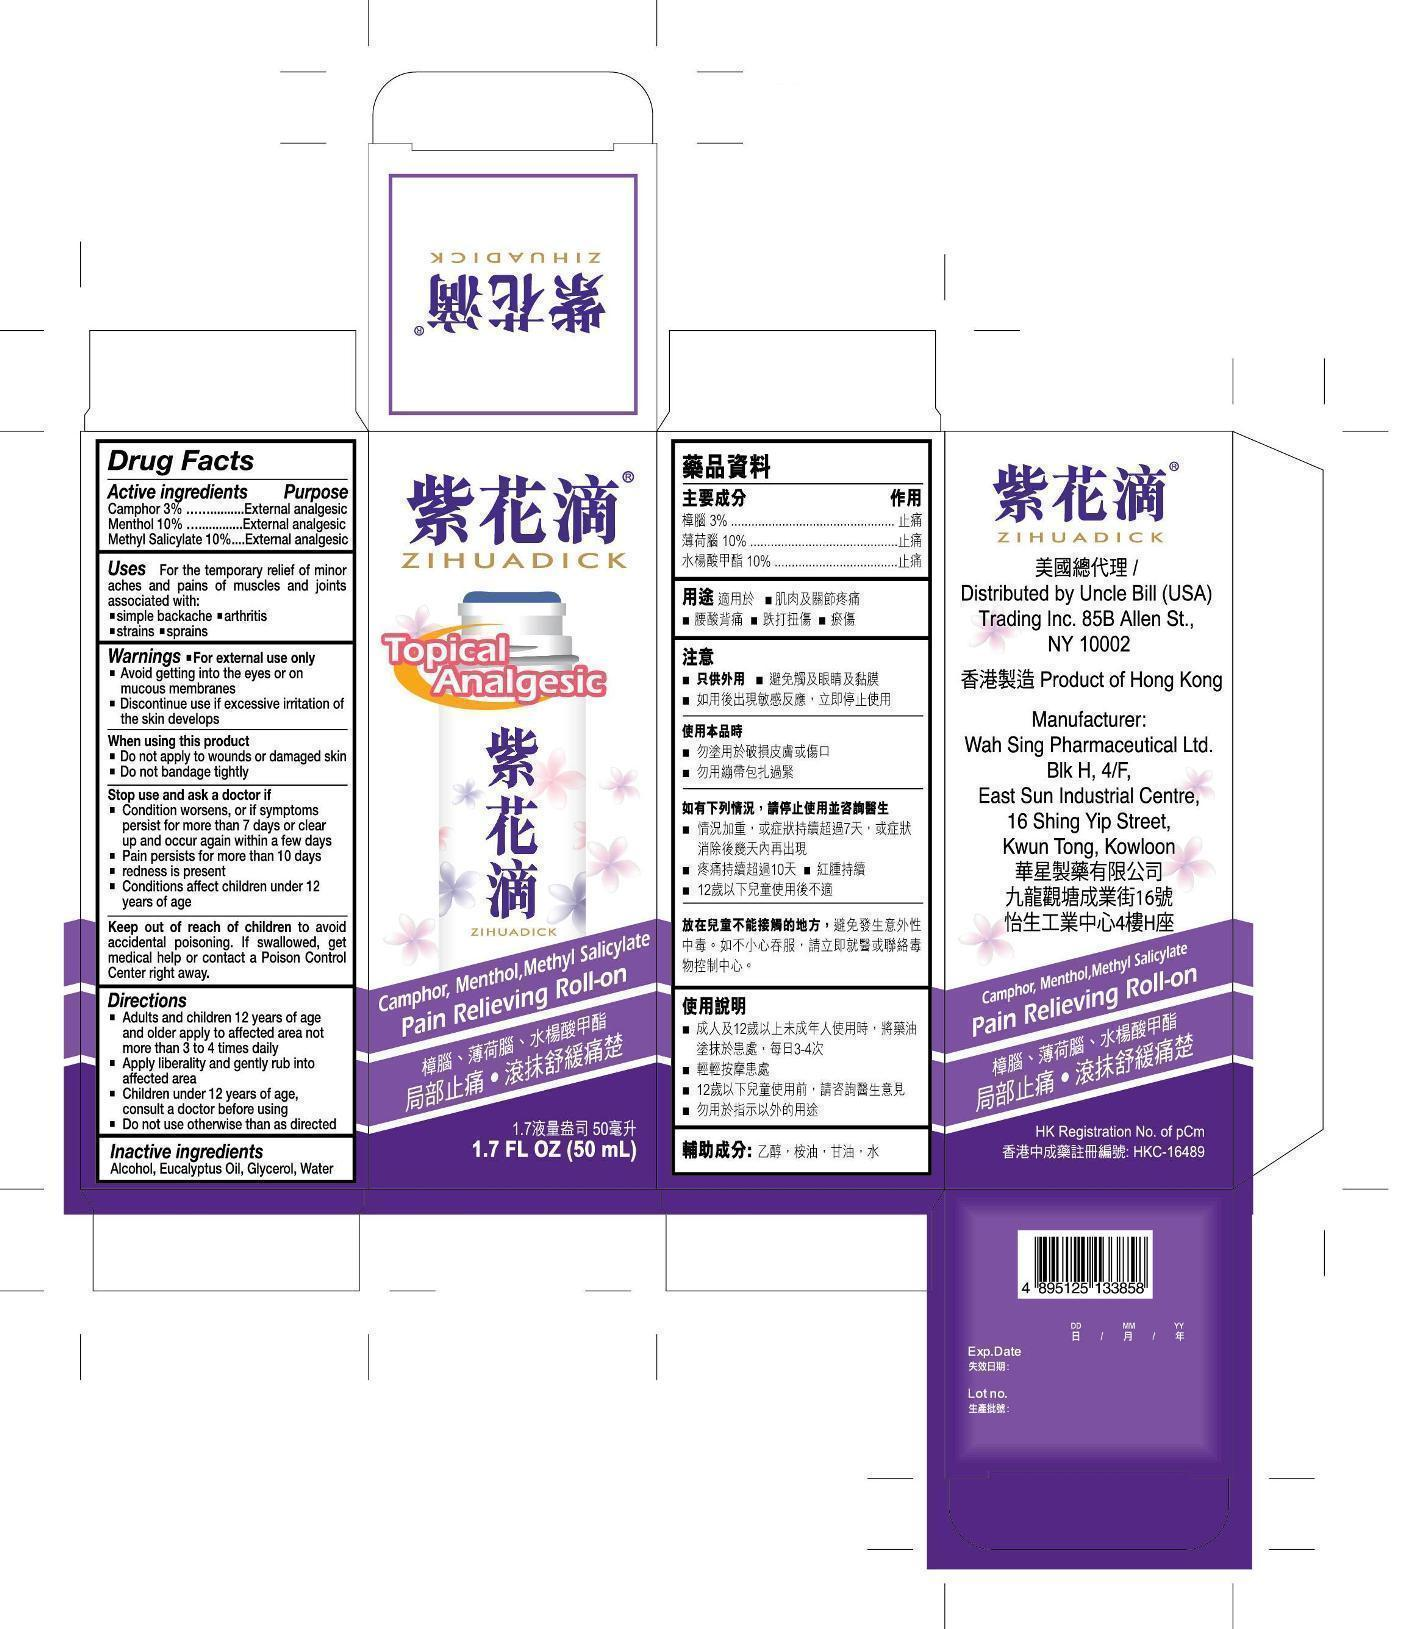 Zihuadick Pain Relieving (Camphor Menthol Methyl Salicylate) Liquid [Wah Sing Pharmaceutical Limited]